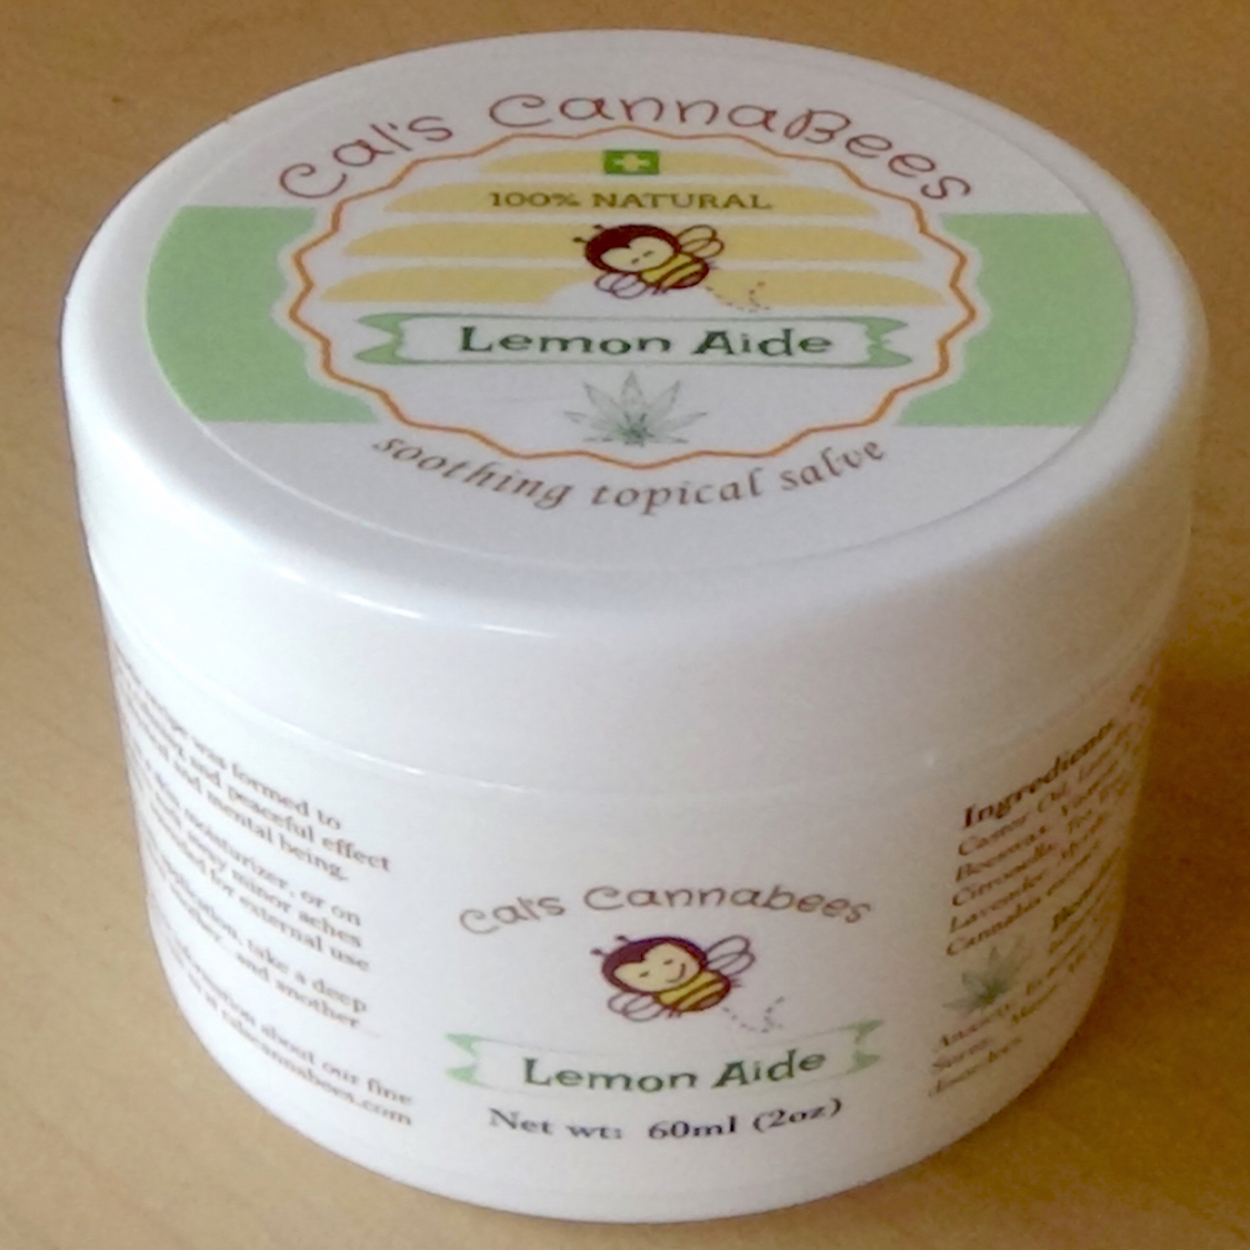 Salve CC – Lemon Aide